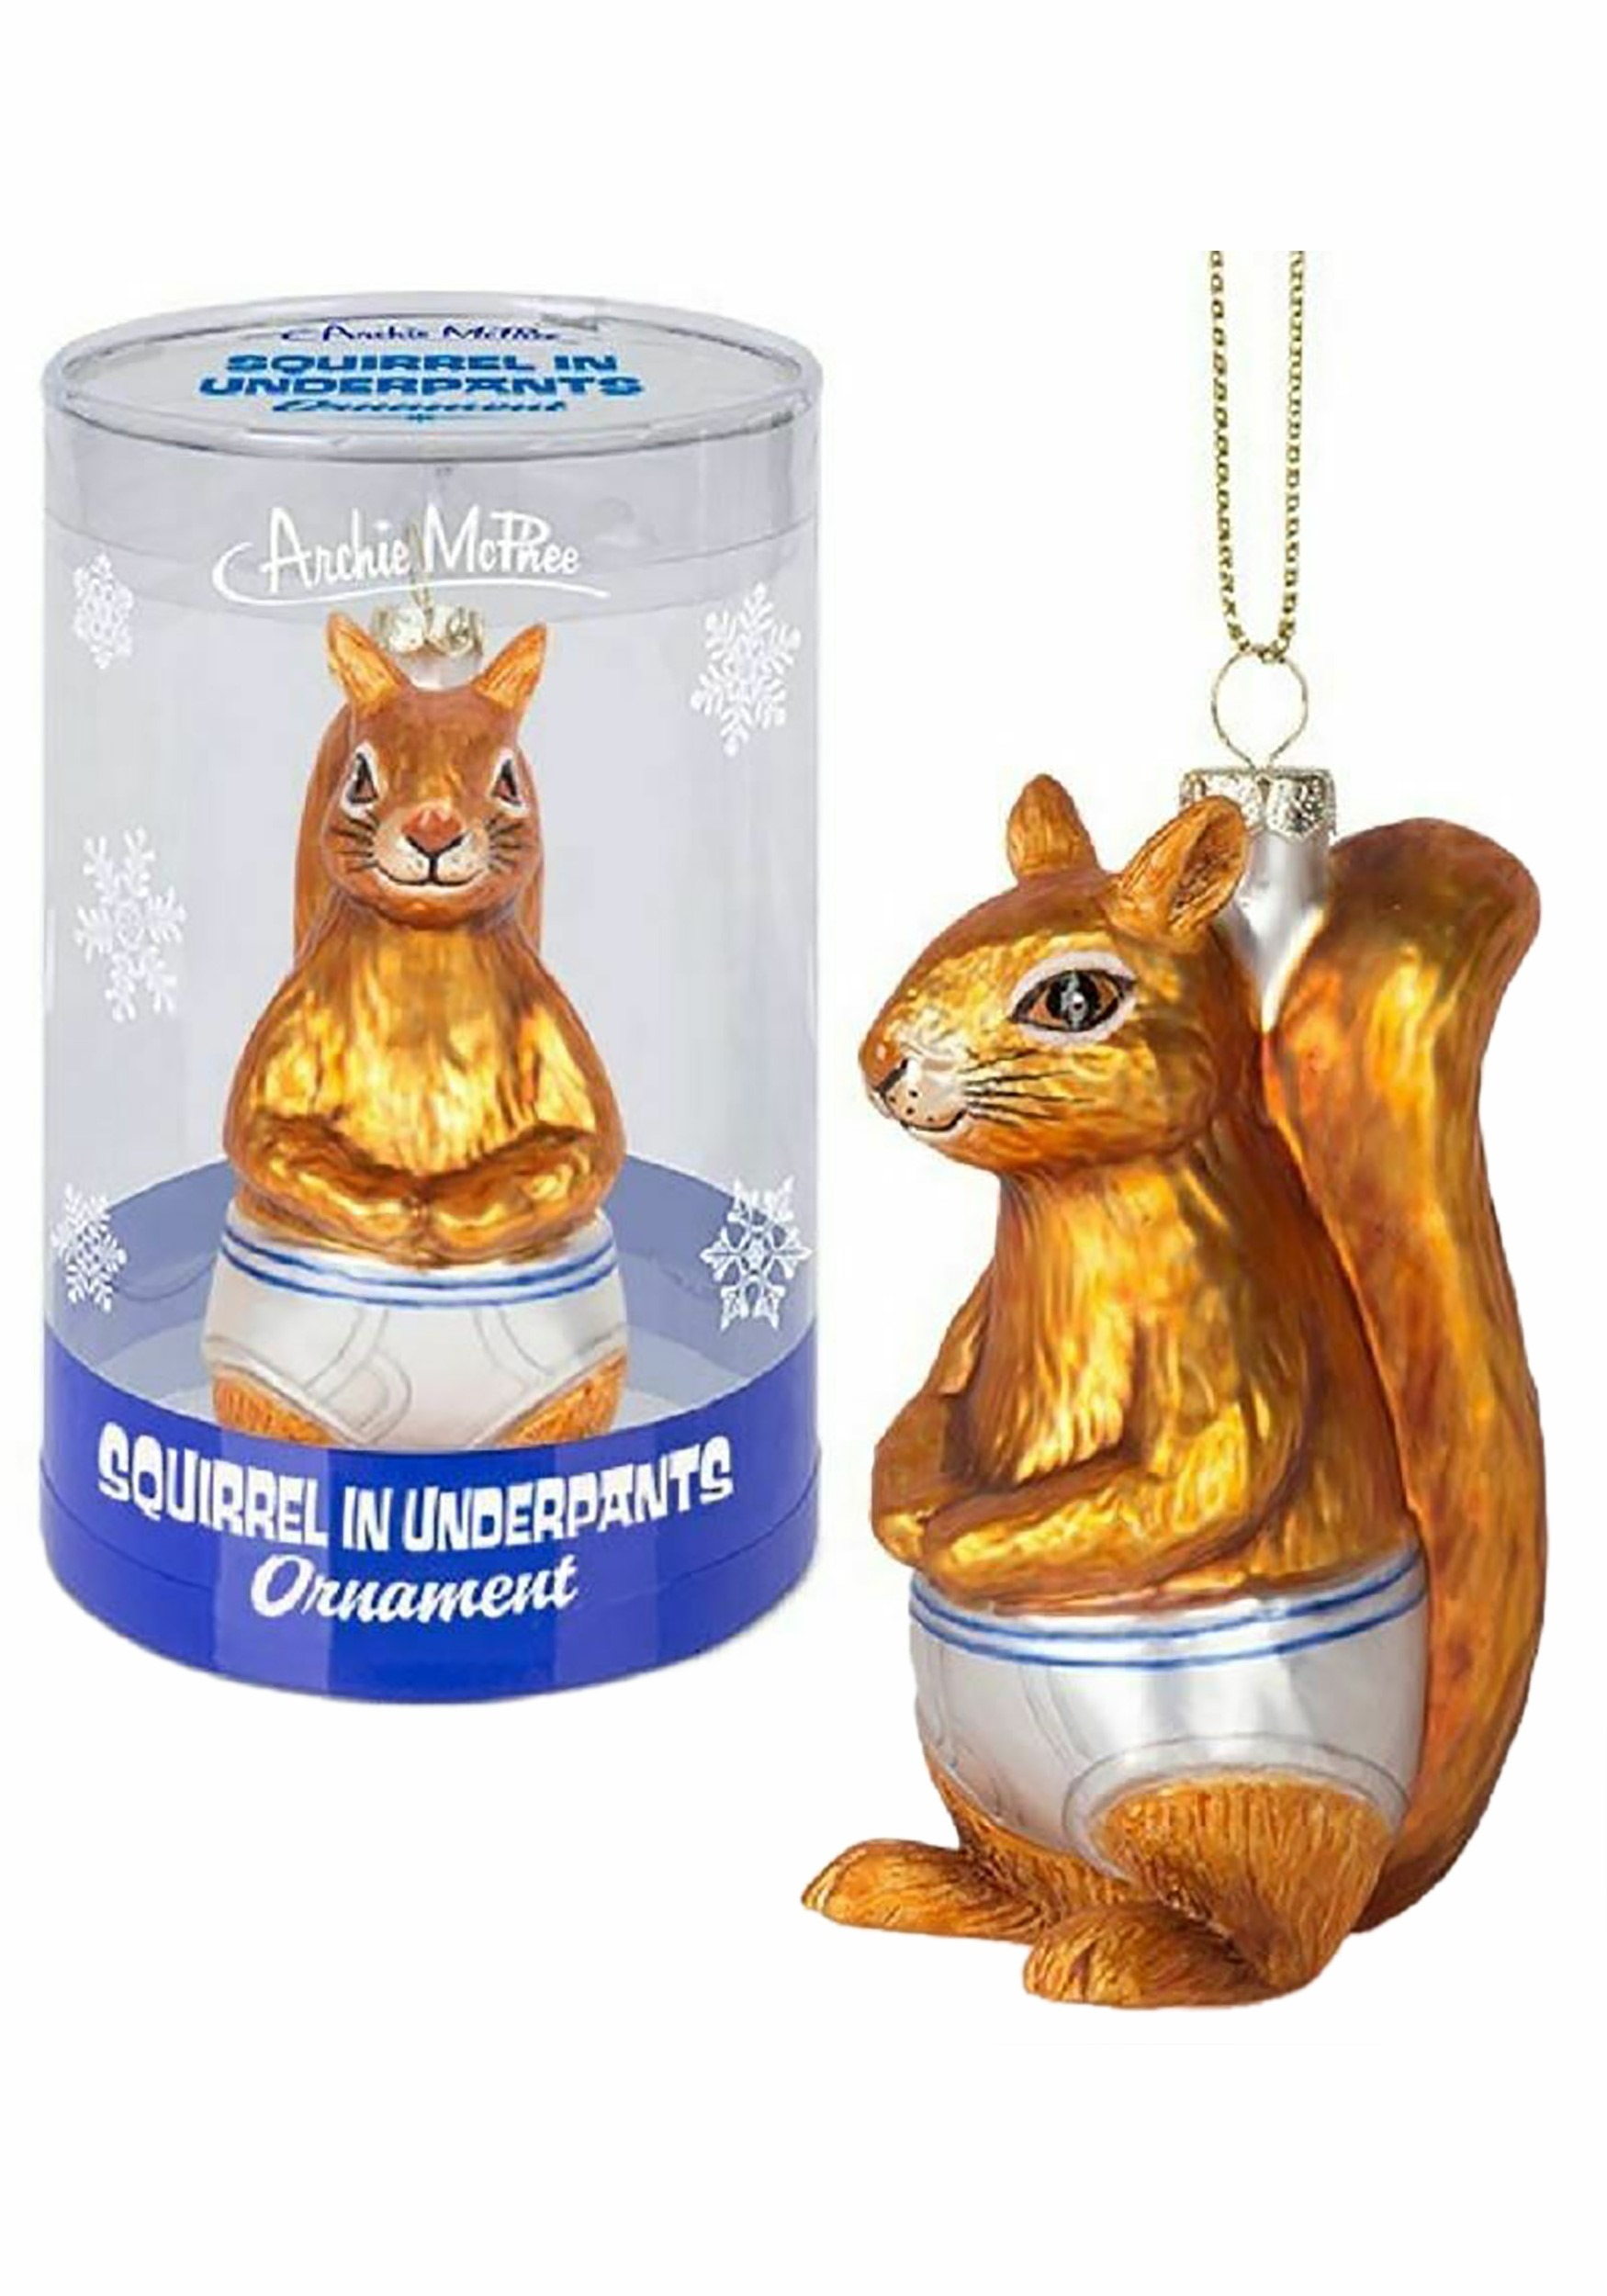 Squirrel_in_Underpants_Ornament_Glass